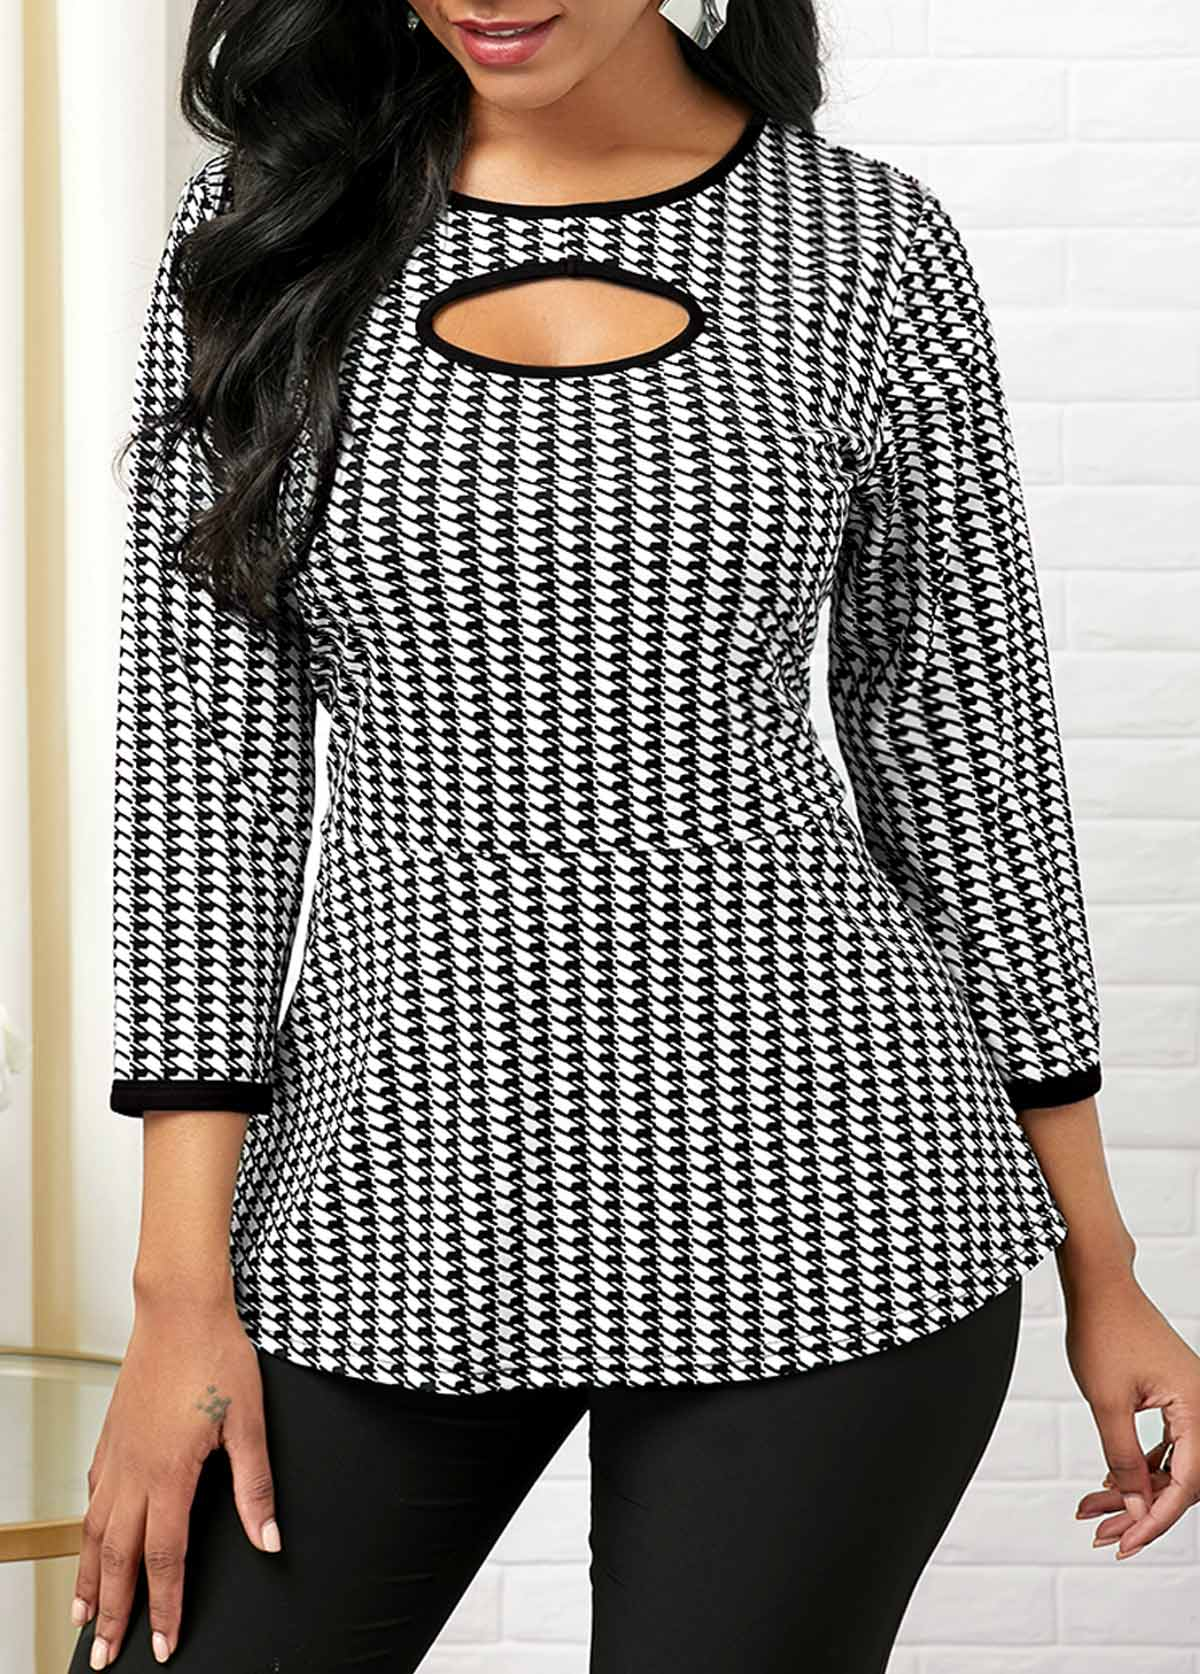 Cutout Front Round Neck Houndstooth Print T Shirt